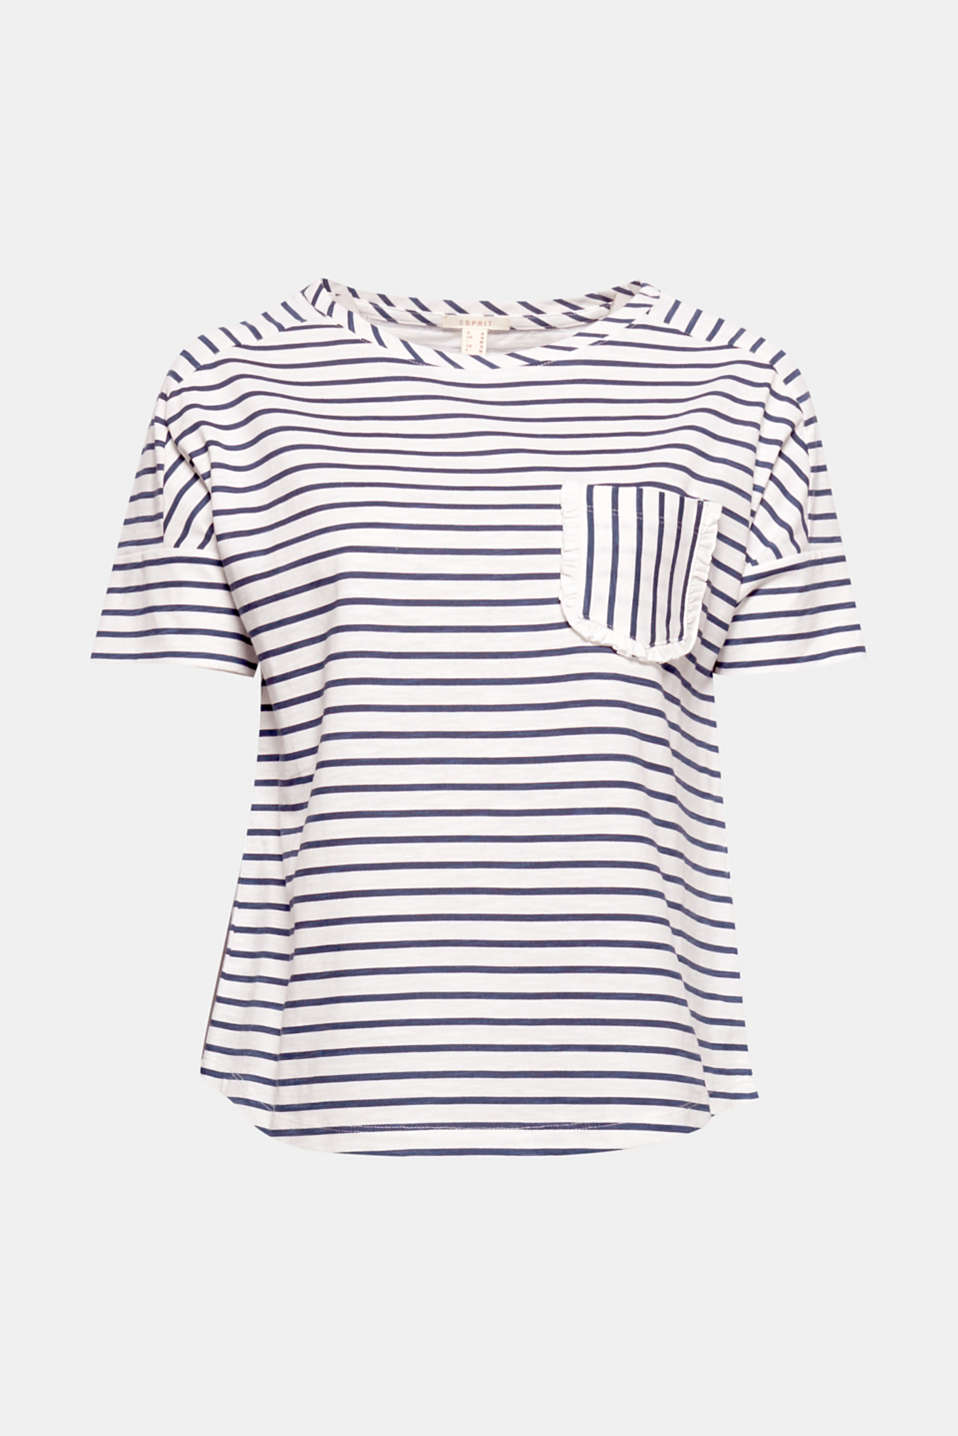 Sporty stripes meet playful frills: on this textured slub top in a slightly boxy shape with an embellished patch breast pocket!